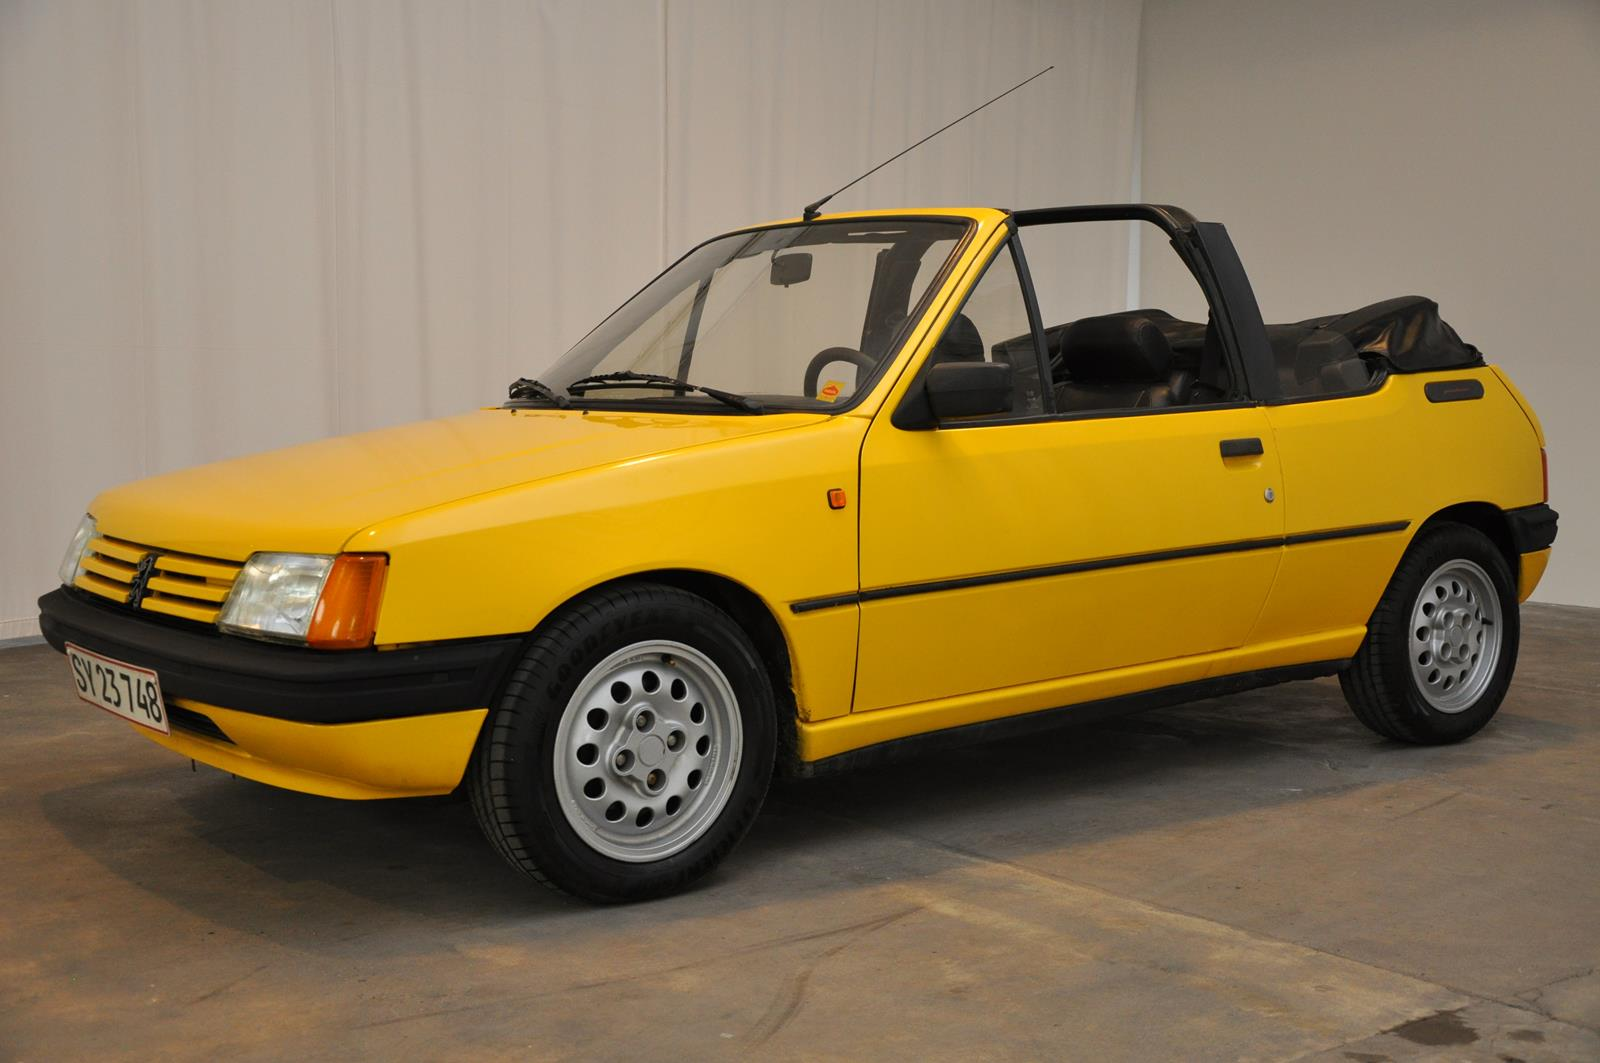 1986 peugeot 205 cti cabriolet classic motor sales. Black Bedroom Furniture Sets. Home Design Ideas